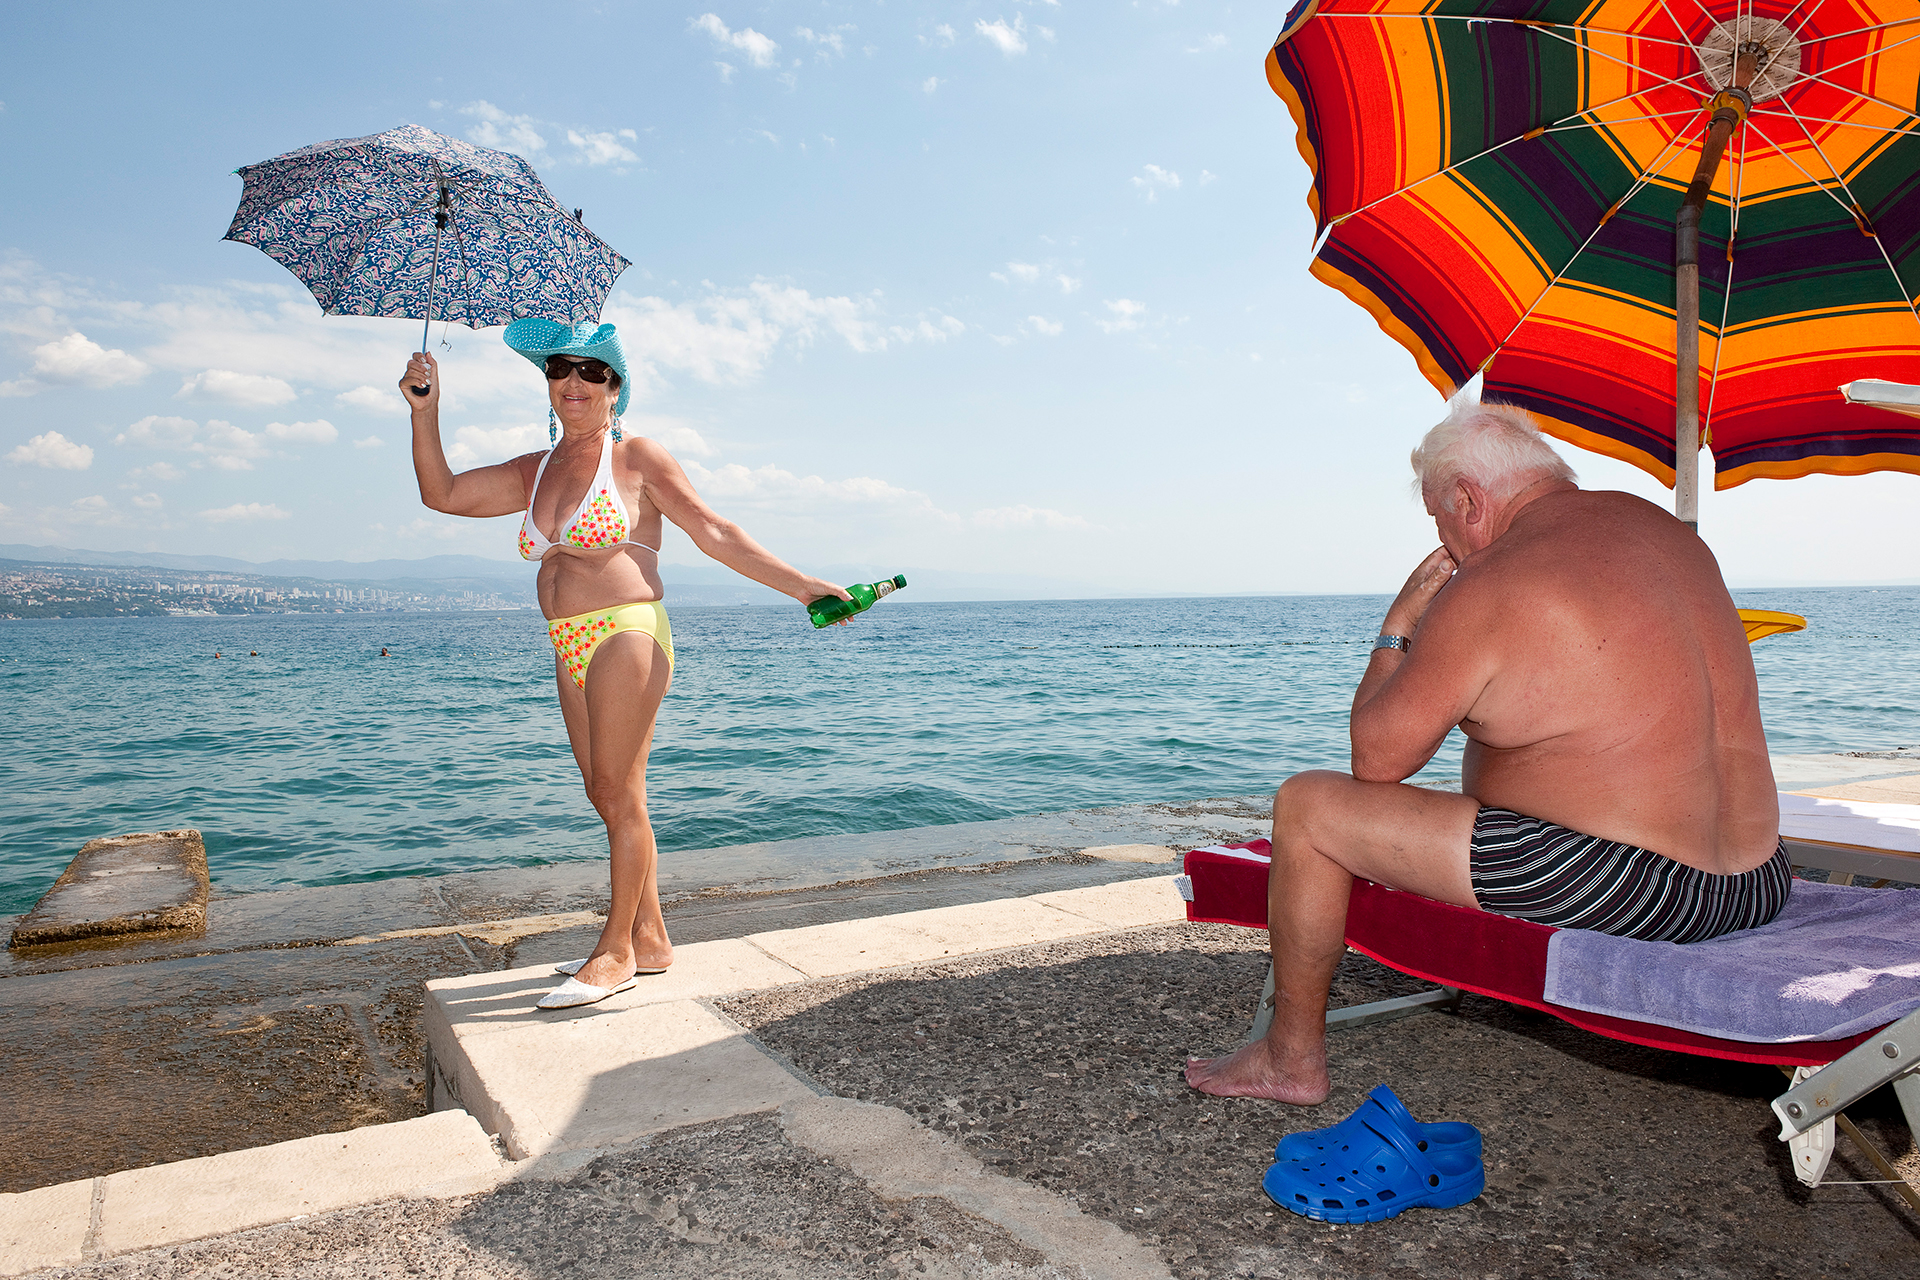 """Croatia"", dalla mostra ""Mediterranean. The continuity of man"" di Nick Hannes in mostra presso Villa Bottini a Lucca nell'ambito di Photolux 2017"